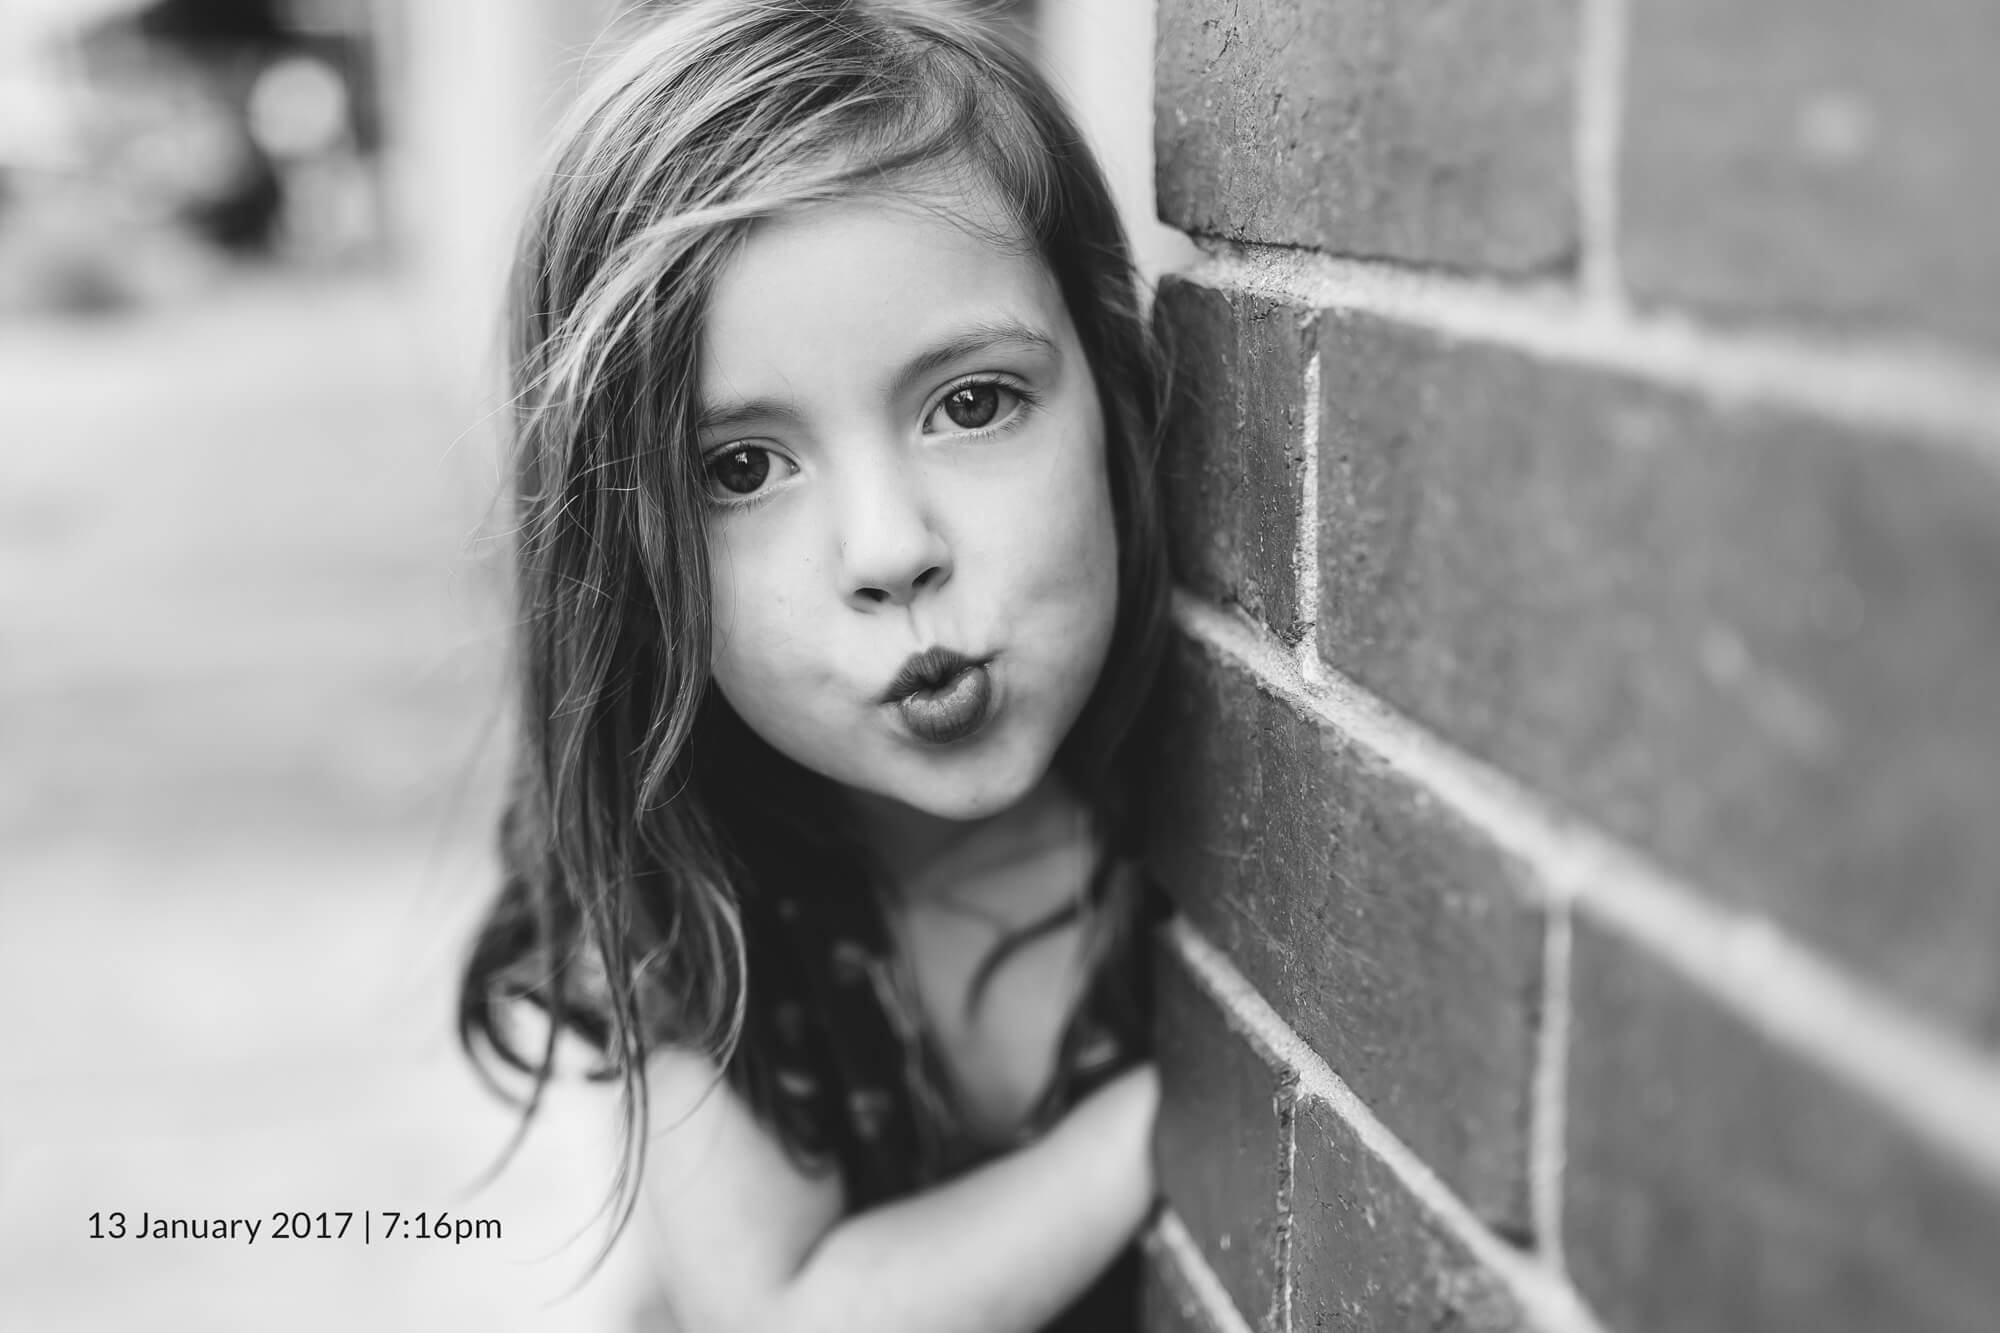 Melbourne child photography. Portrait in black and white of a young girl.